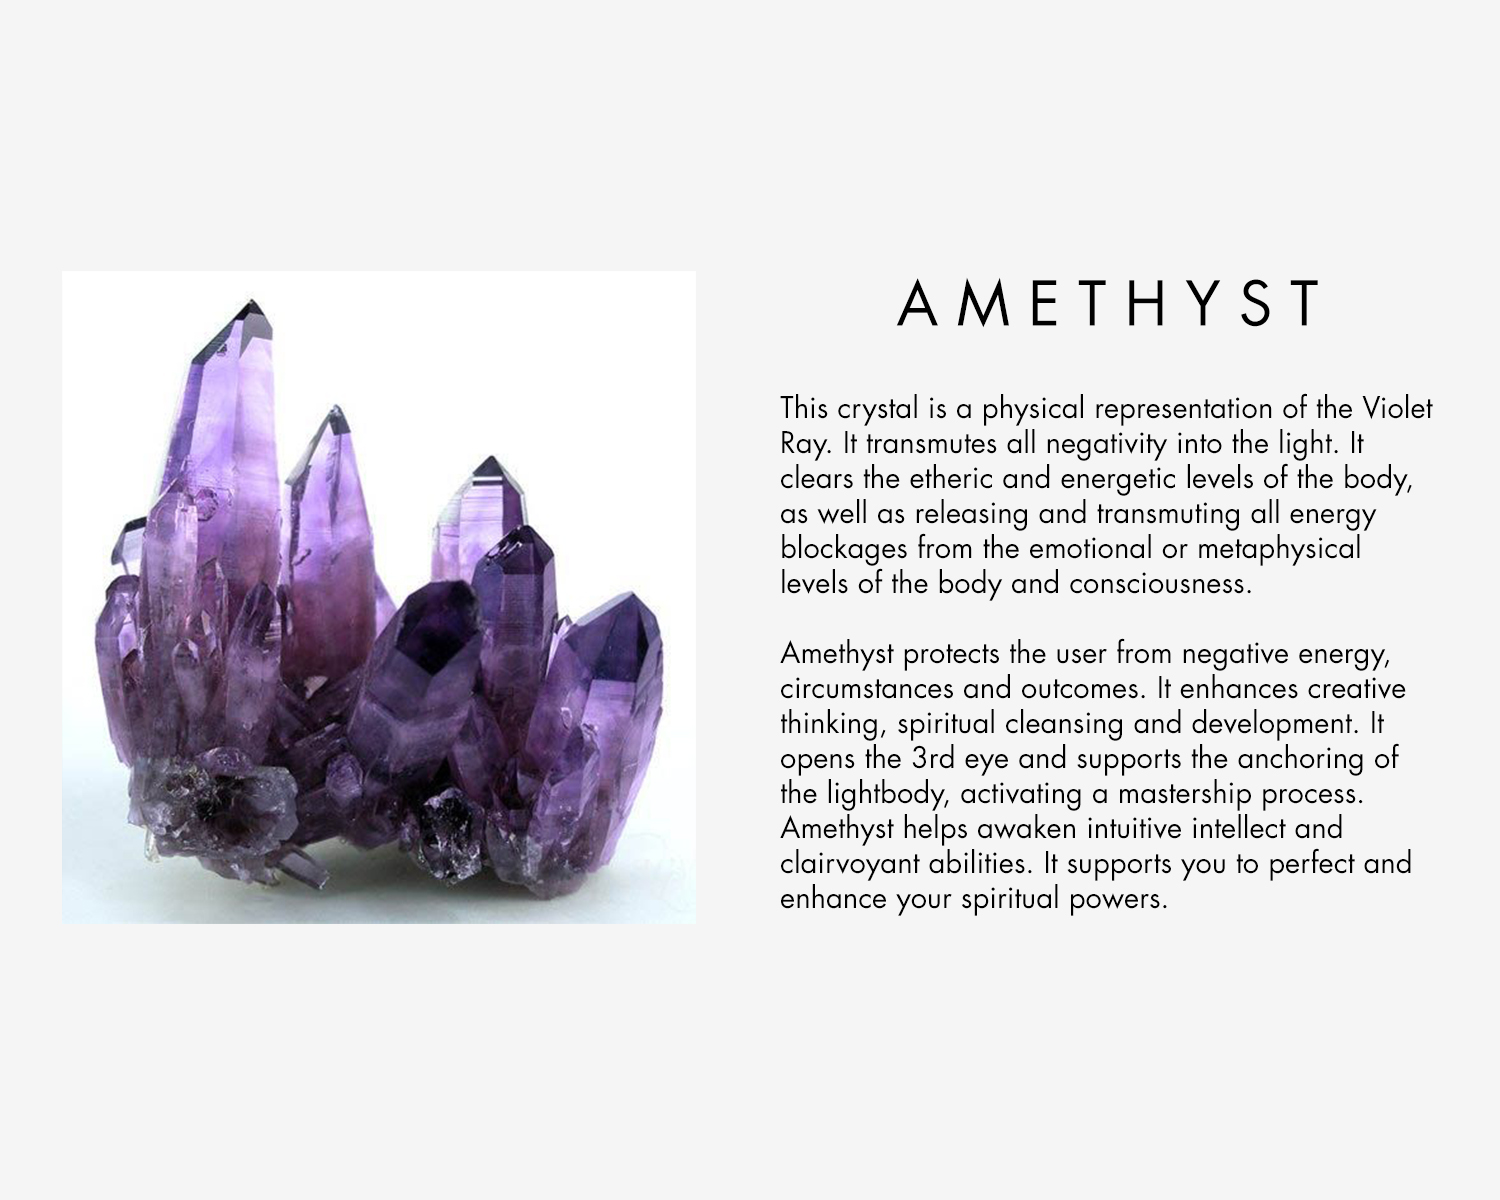 This crystal is a physical representation of the Violet Ray. It transmutes all negativity into the light. It clears the etheric and energetic levels of the body, as well as releasing and transmuting all energy blockages from the emotional or metaphysical levels of the body and consciousness. Amethyst protects the user from negative energy, circumstances and outcomes. It enhances creative thinking, spiritual cleansing and development. It opens the 3rd eye and supports the anchoring of the lightbody, activating a mastership process. Amethyst helps awaken intuitive intellect and clairvoyant abilities. It supports you to perfect and enhance your spiritual powers.